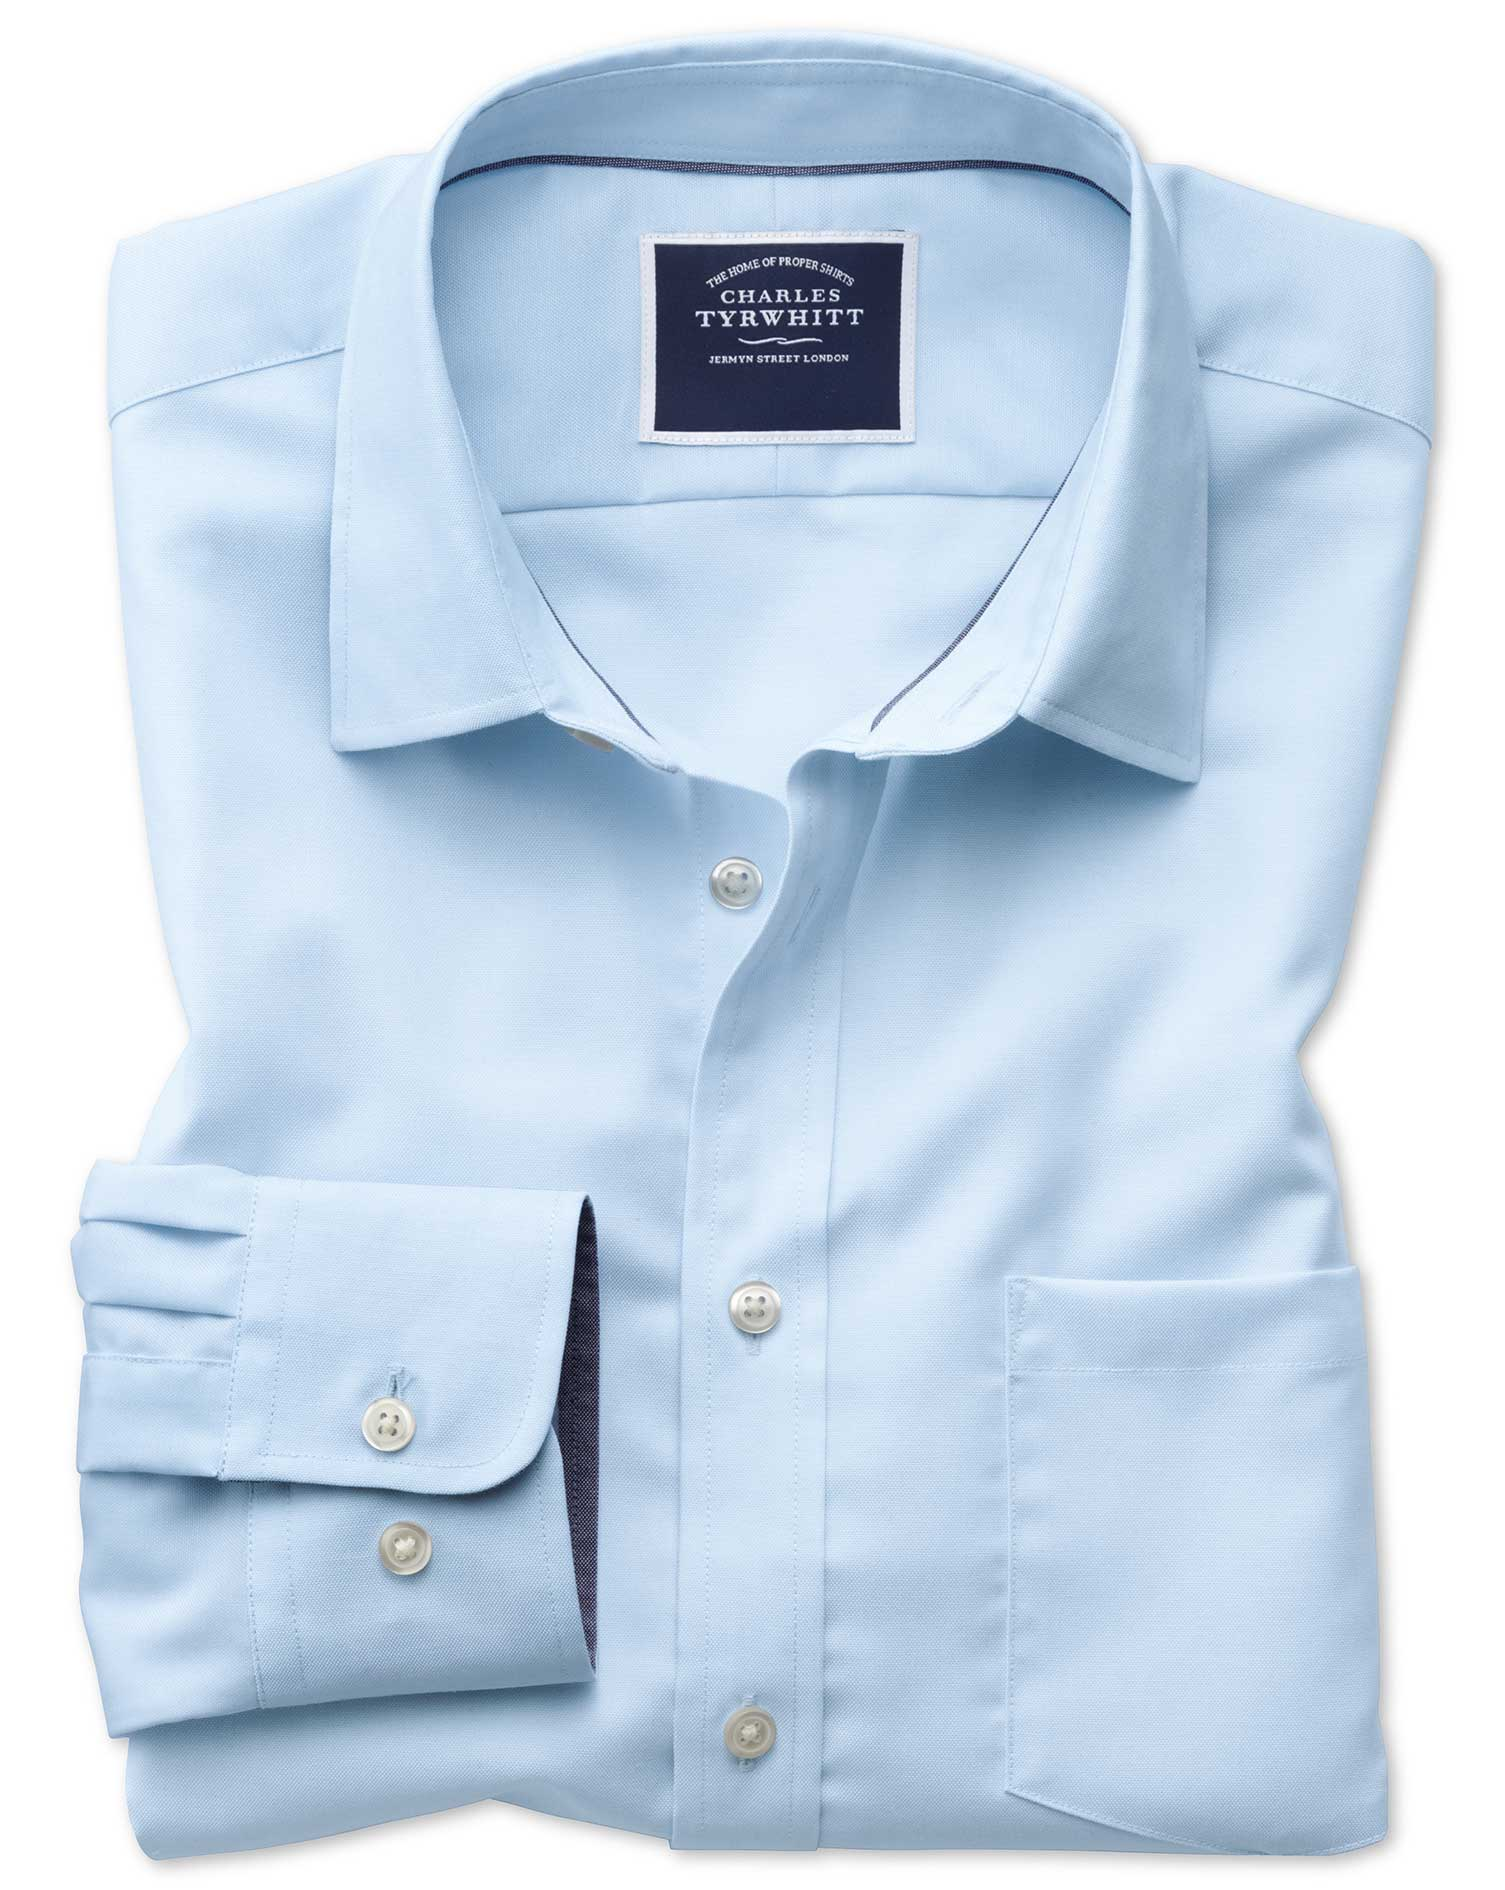 Classic Fit Non-Iron Oxford Light Blue Plain Cotton Shirt Single Cuff Size XL by Charles Tyrwhitt